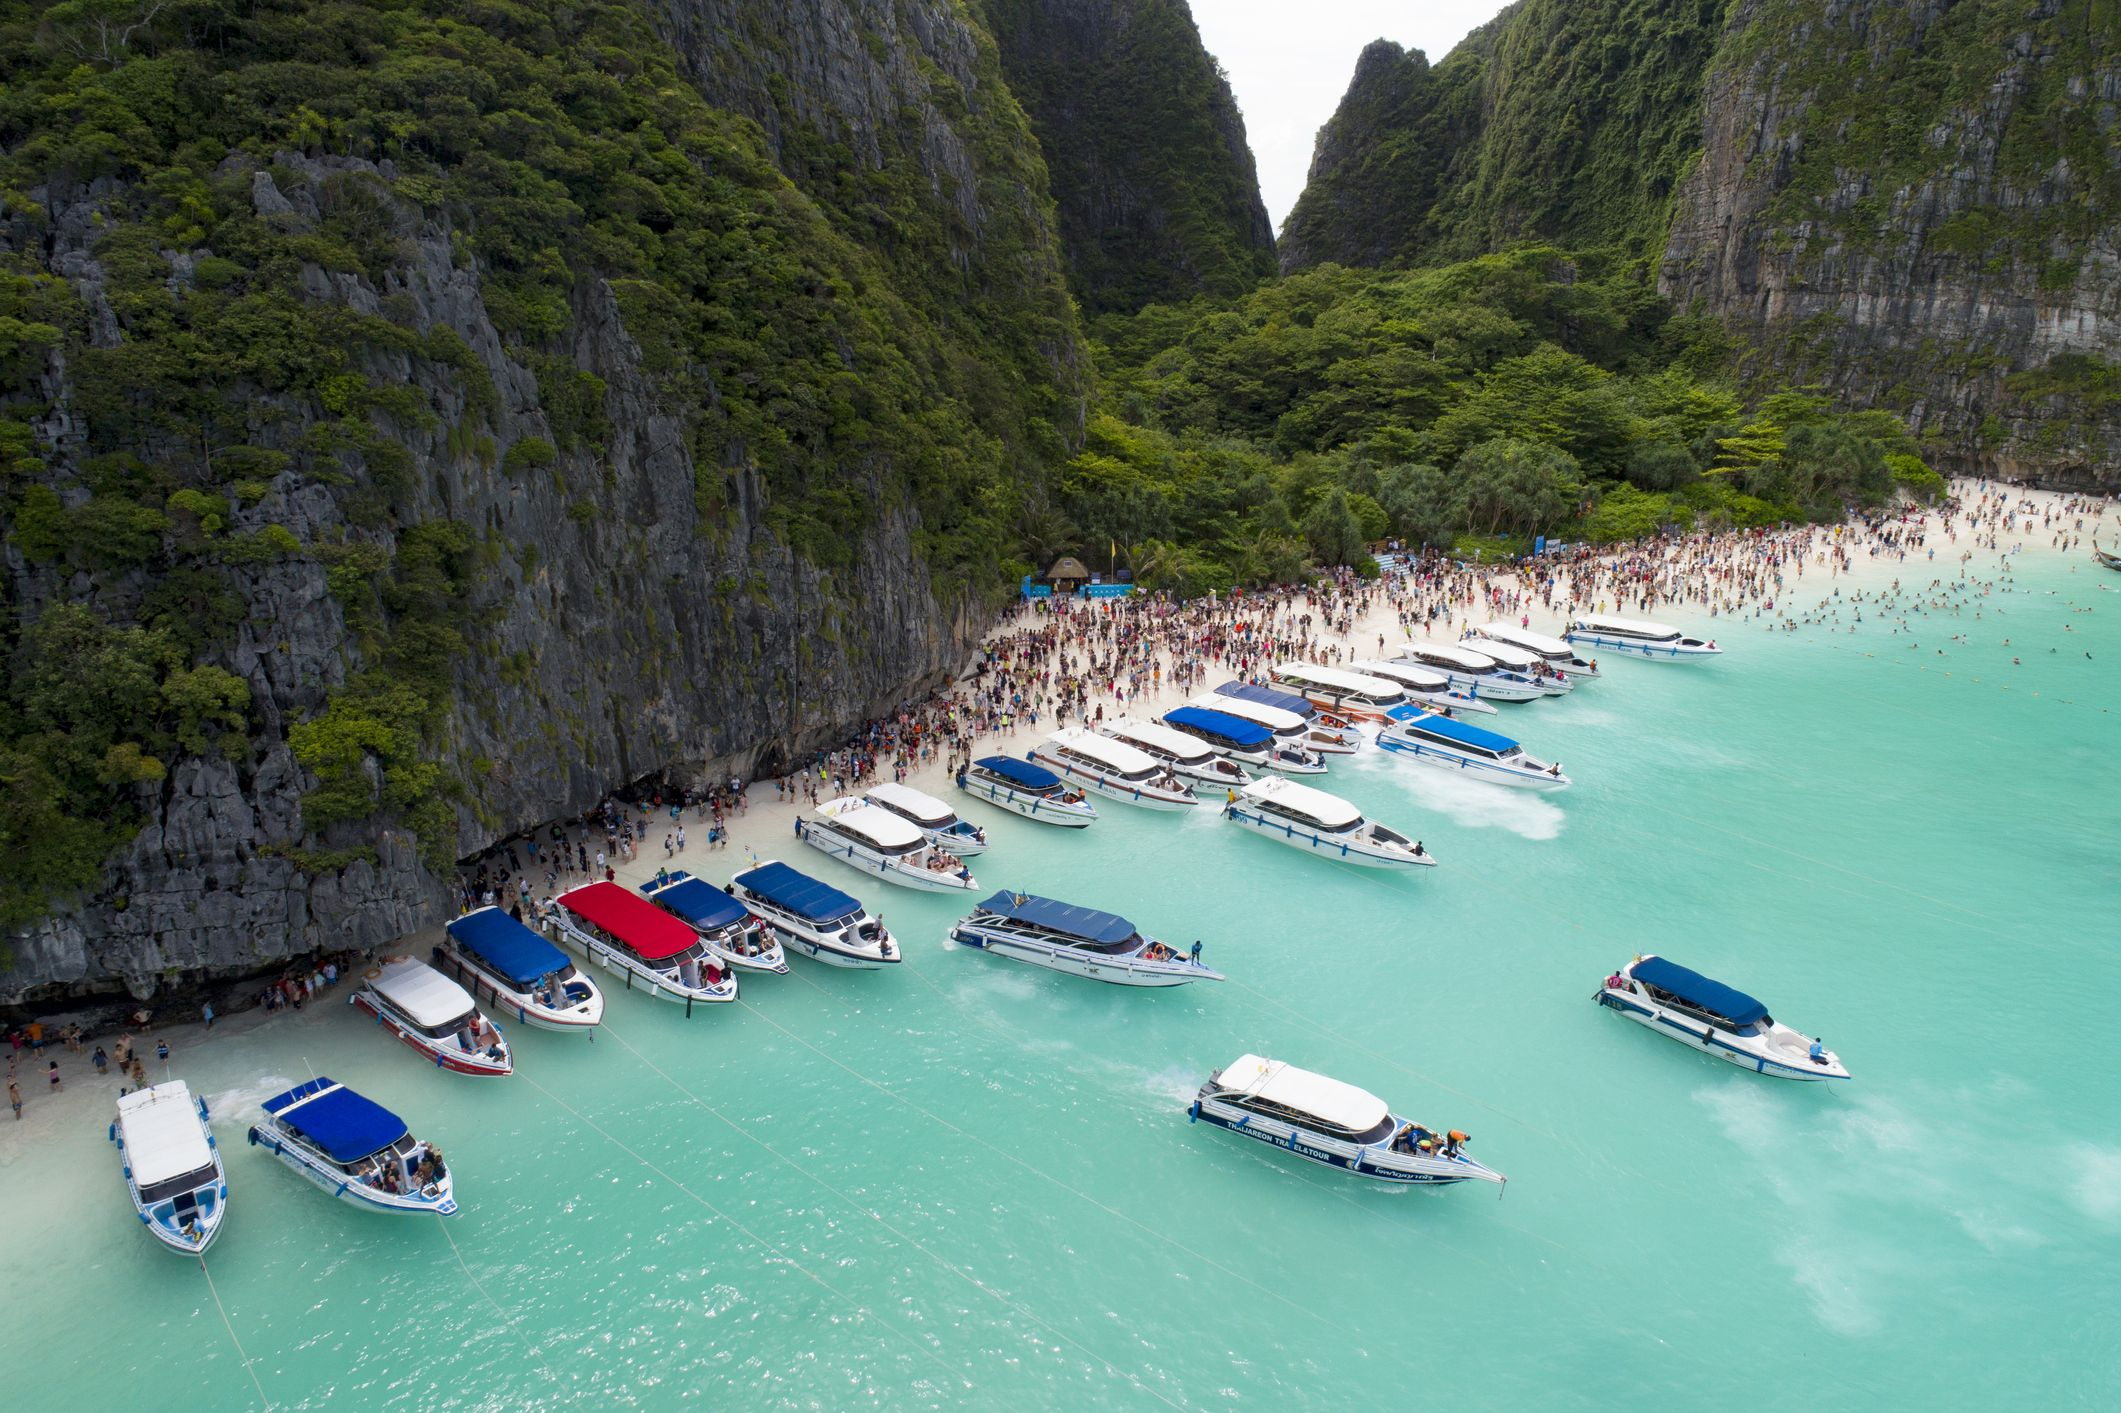 Thailand's famous Maya Bay from The Beach extends closure until 2021